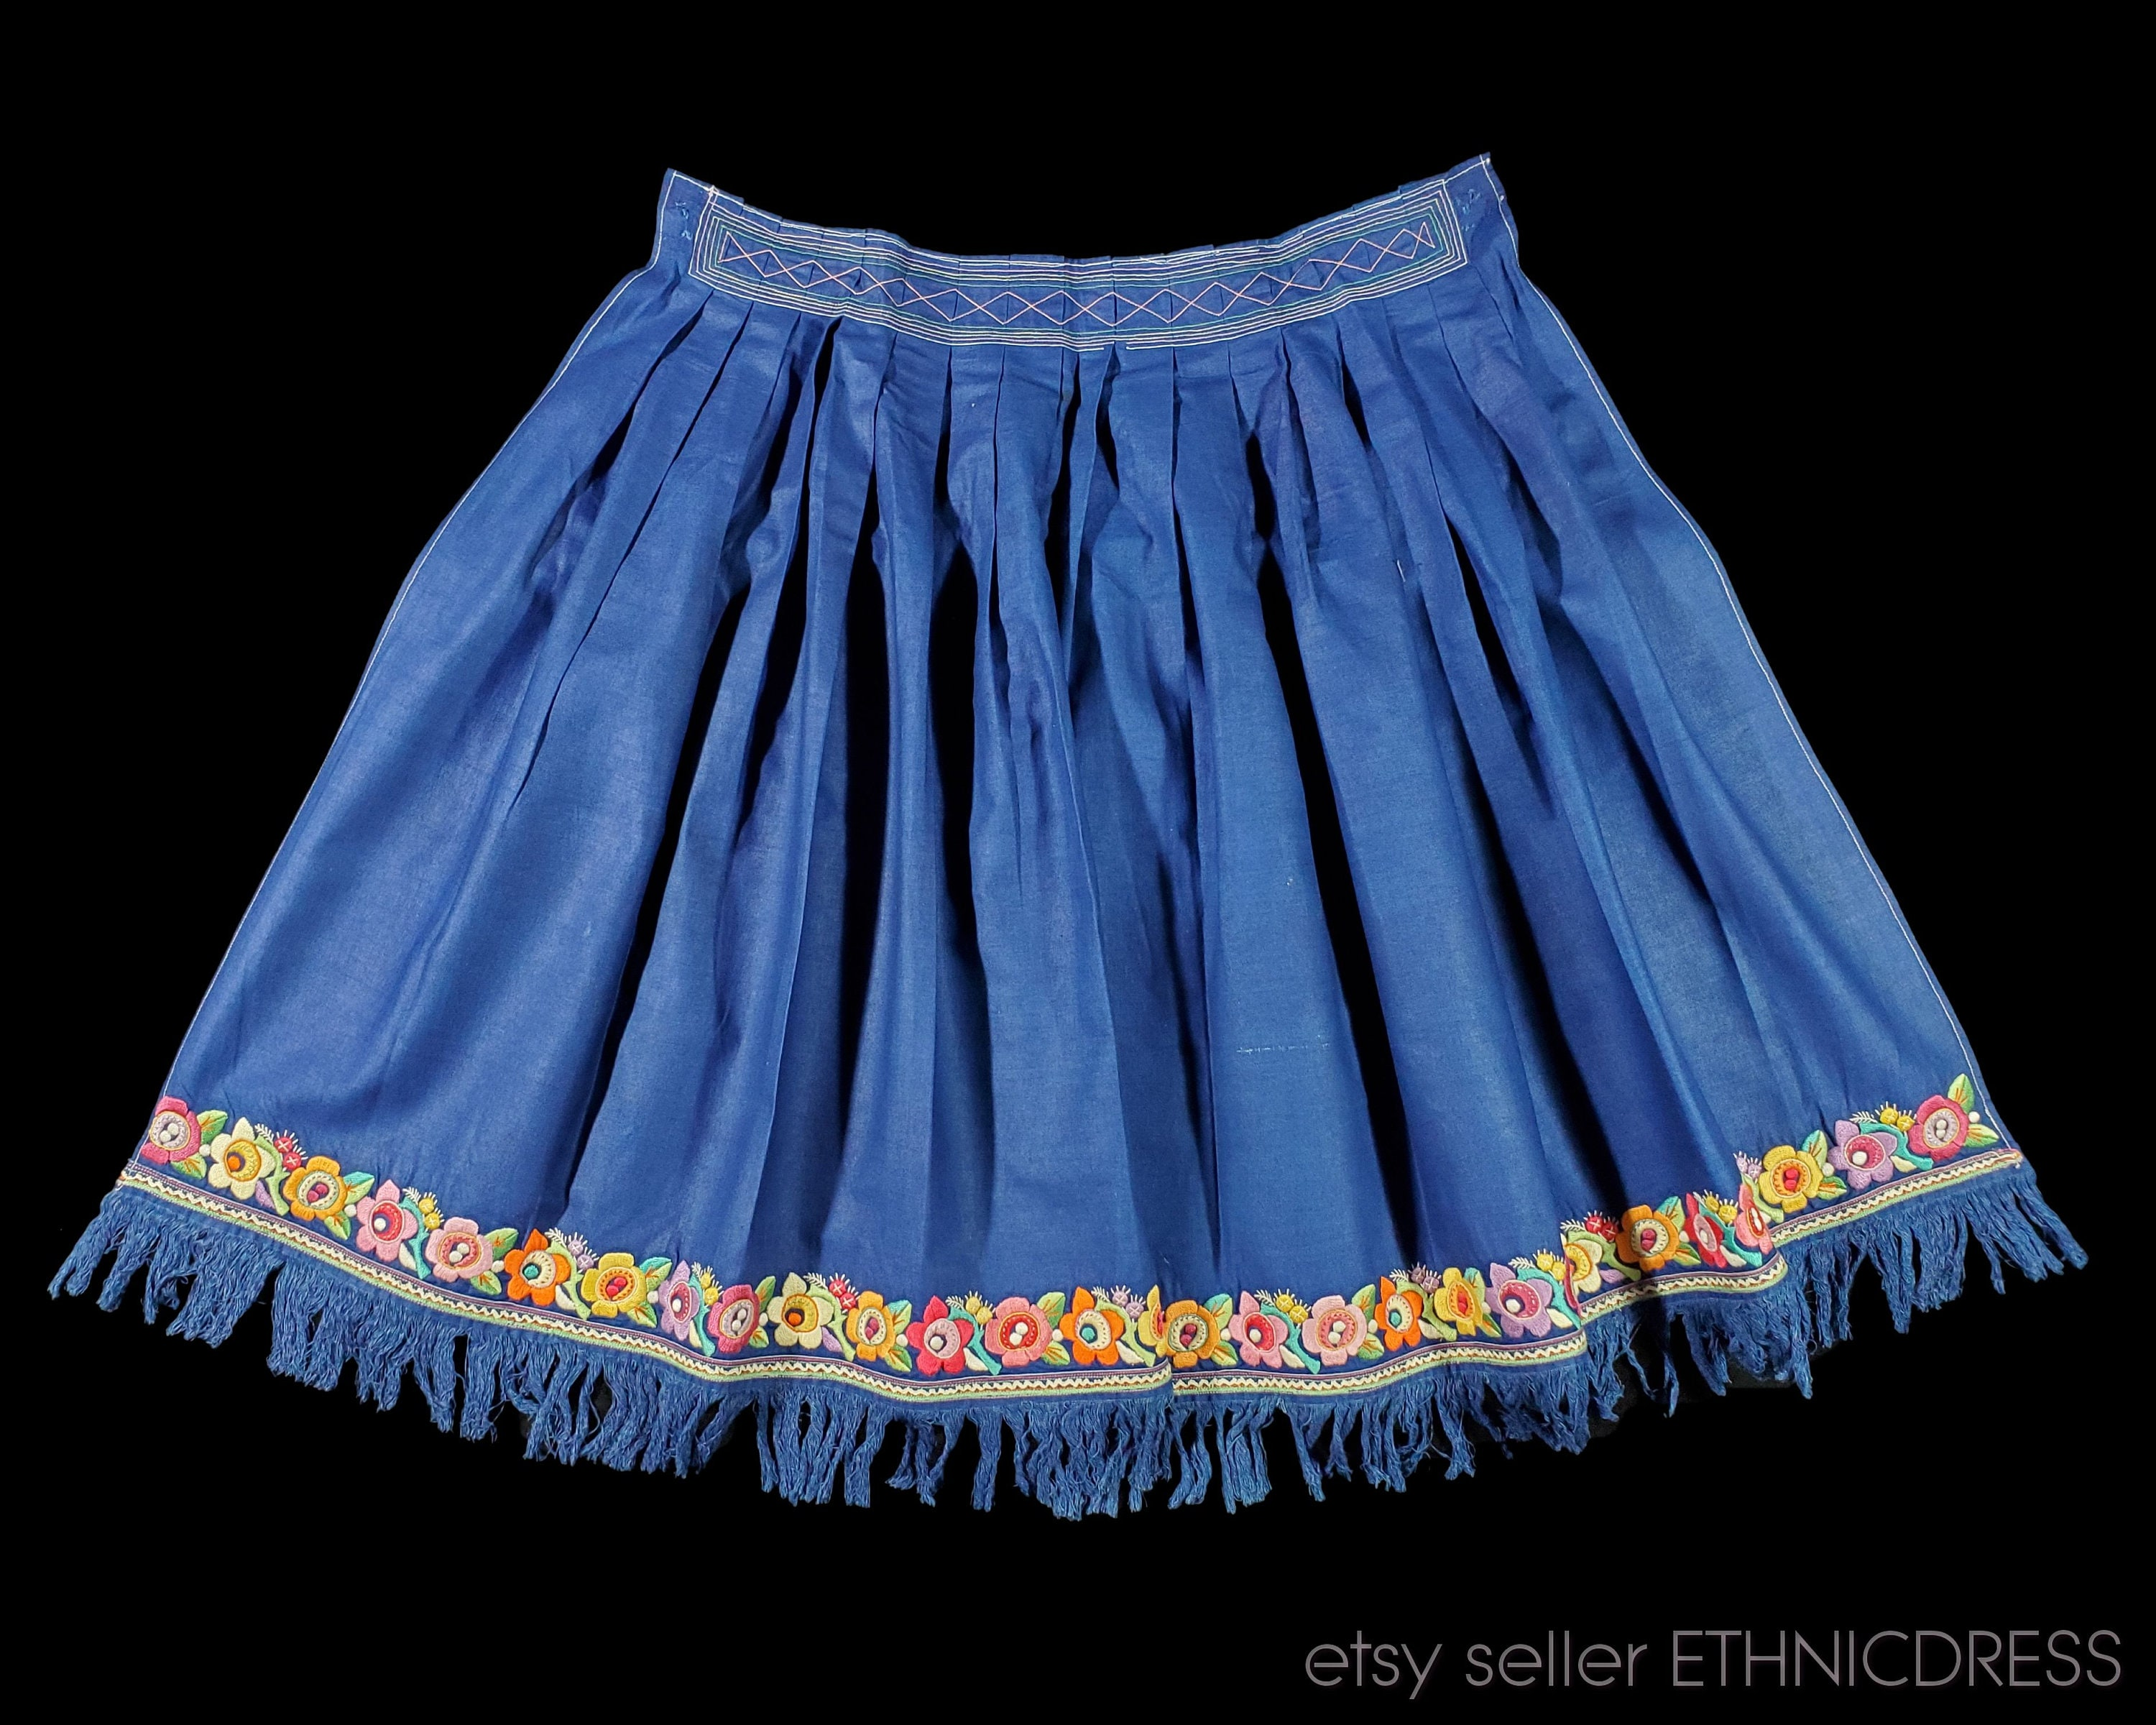 Vintage Aprons, Retro Aprons, Old Fashioned Aprons & Patterns Authentic Slovak Folk Costume From Western Slovakia  Zahorie Kroj Blue Cottom with Floral Embroidery Vintage Folklore Clothing Dress Ethnic $75.00 AT vintagedancer.com